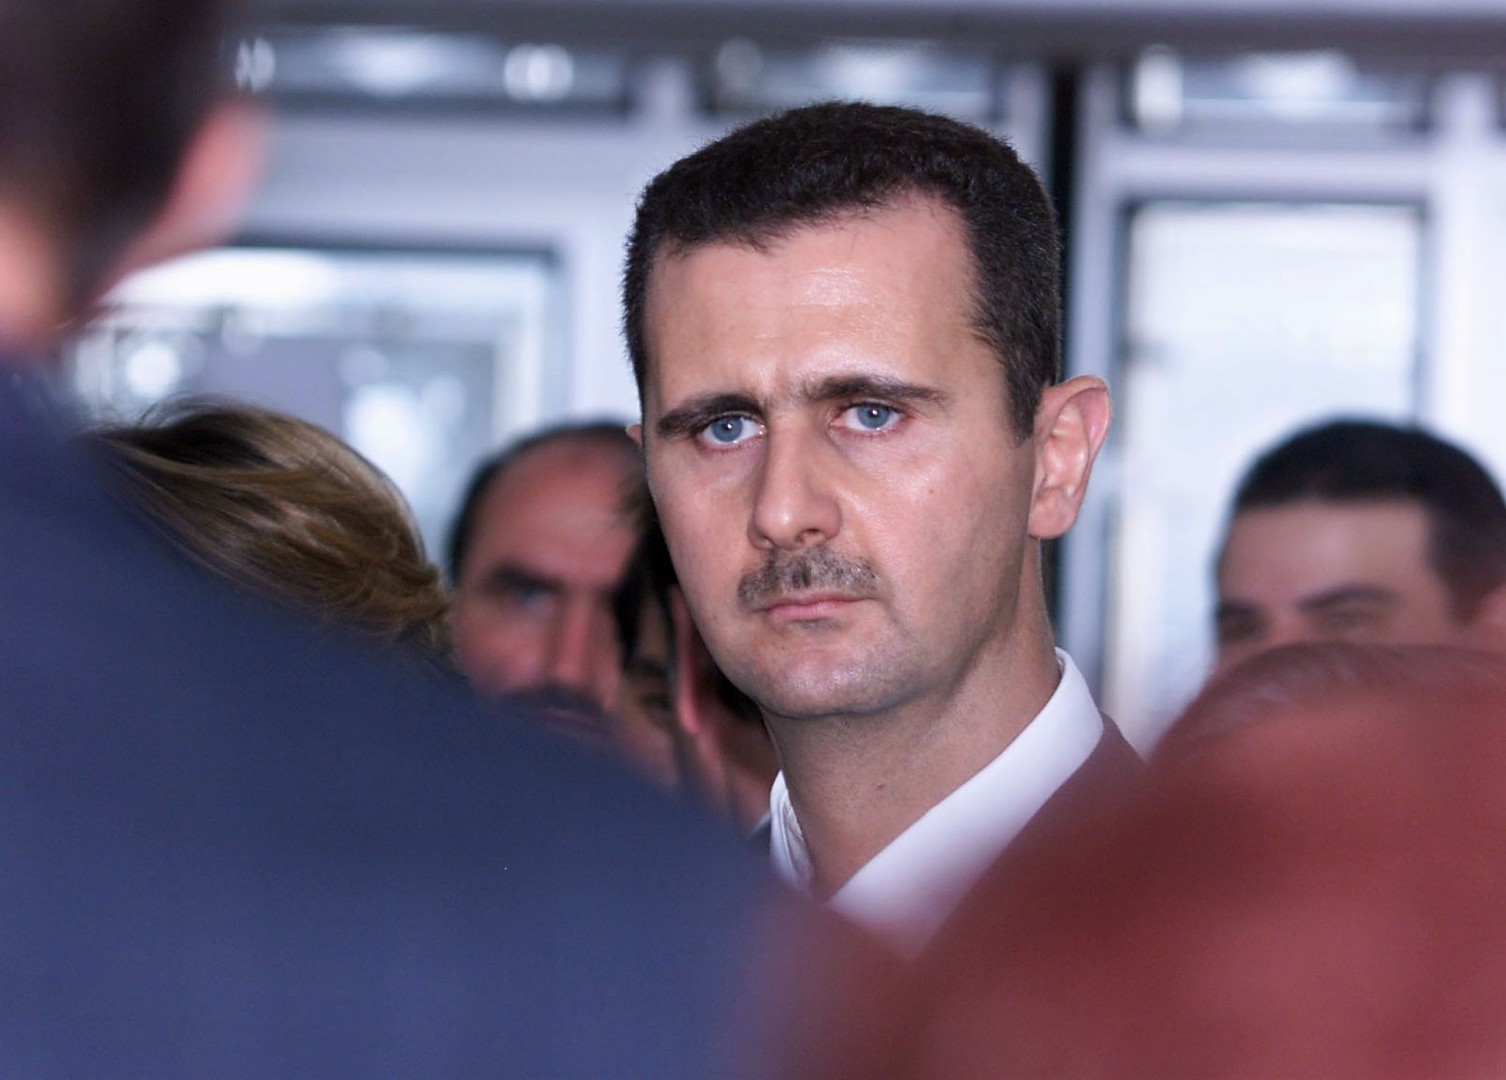 "(FILES) In this file photo taken on June 26, 2001 Syrian President Bashar al-Assad is seen during his visit at the Arab World Institute in Paris. France has initiated a procedure for the withdrawal of the Legion of Honor attributed to Syrian President Bashar al-Assad, said on April 16, 2018 evening to AFP the entourage of President Emmanuel Macron. ""The Elysee confirms that a disciplinary procedure of withdrawal of the Legion of Honor"", the highest French distinction, ""against Bashar al-Assad has been committed,"" said the Presidency of the Republic. / AFP PHOTO / Jack GUEZ"